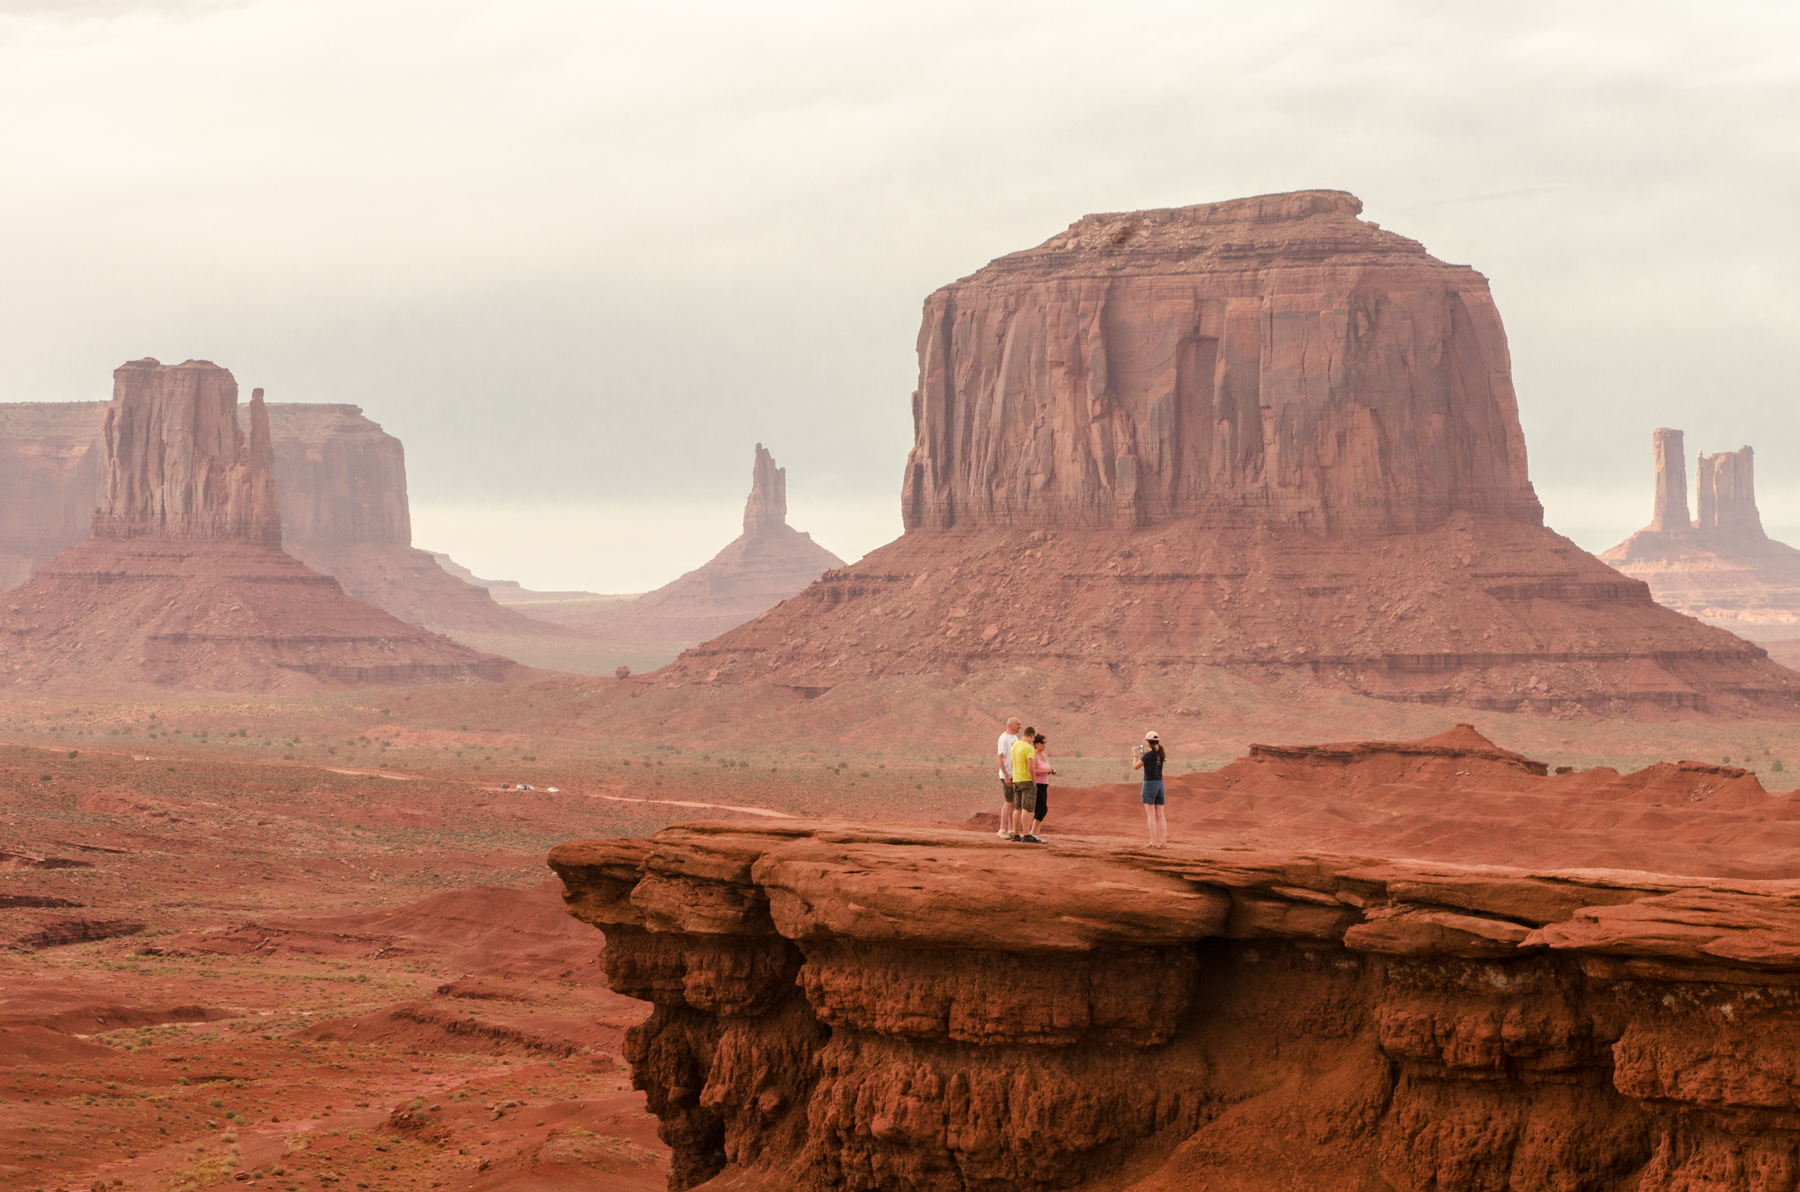 Monument Valley was spectacular, even in a dust storm so severe we could only see a few metres in front of us.